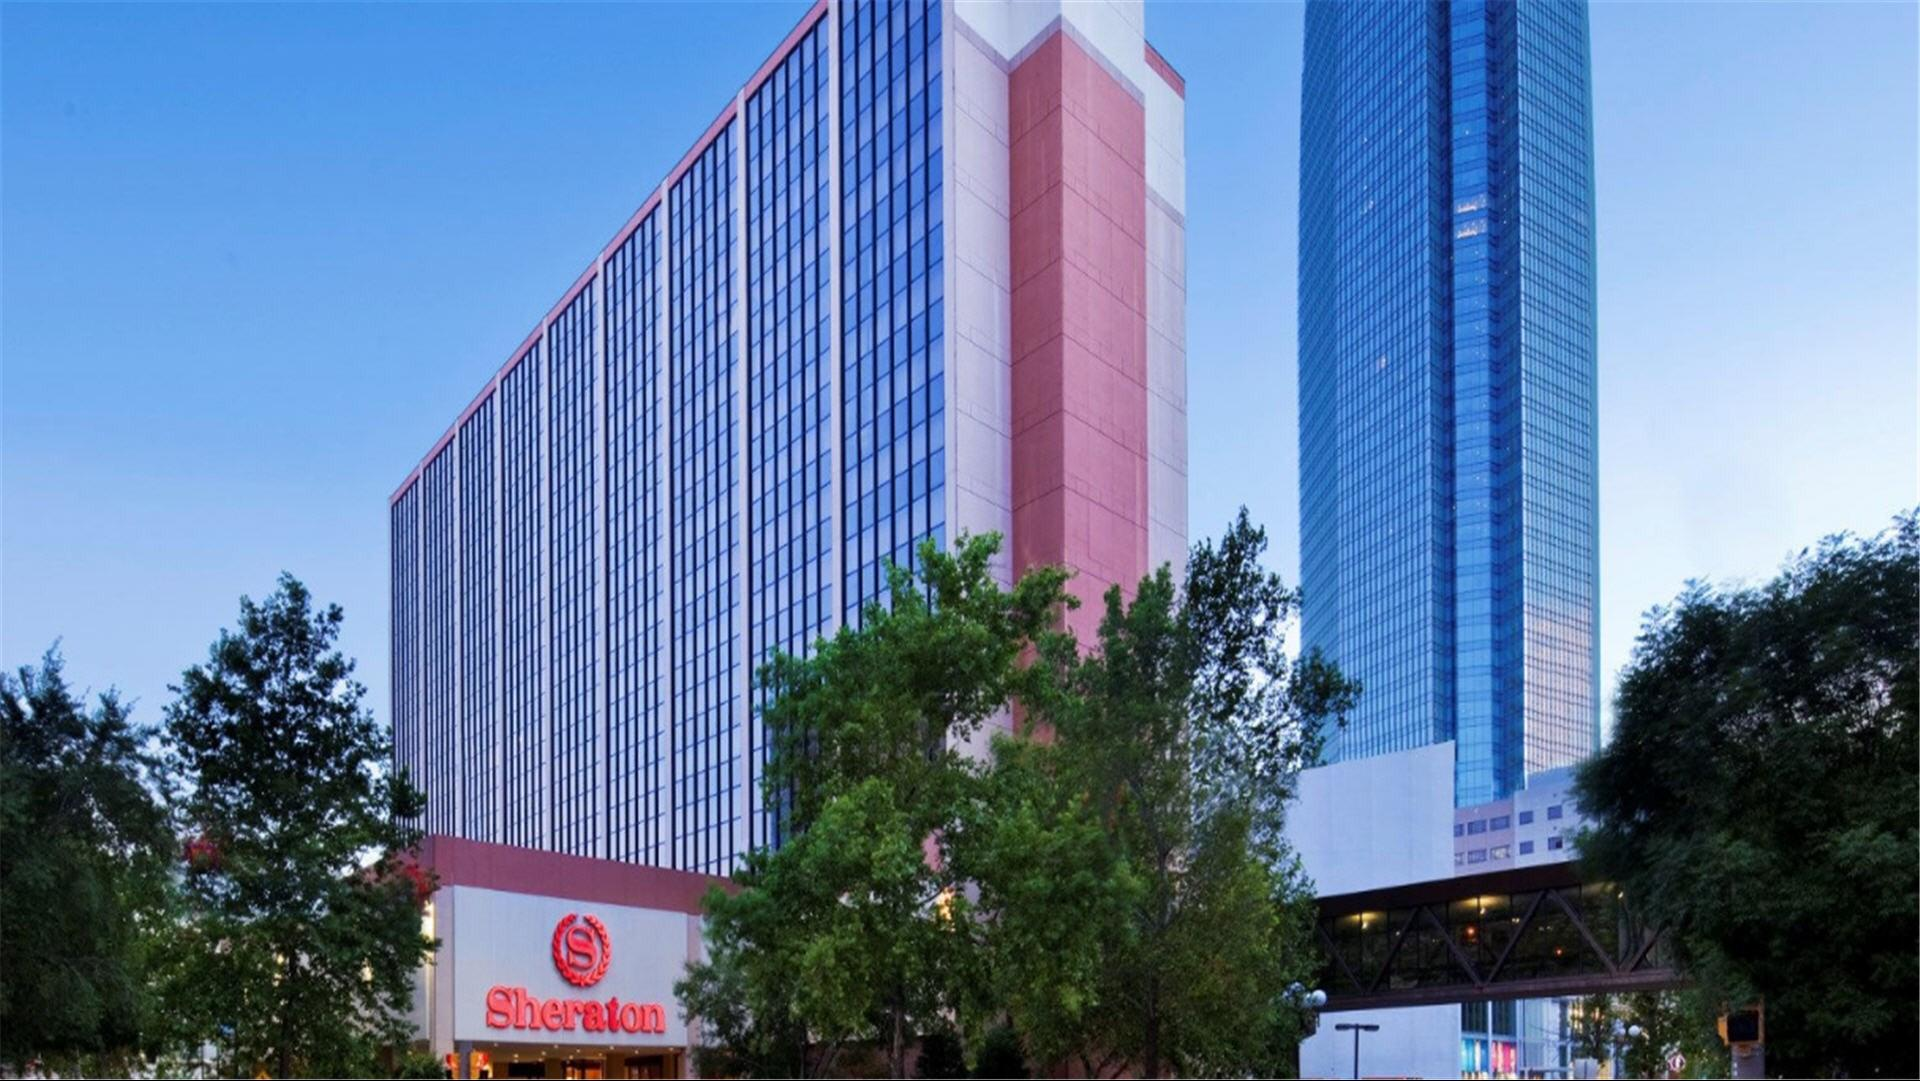 Meetings And Events At Sheraton Oklahoma City Downtown Hotel, Oklahoma City,  OK, US